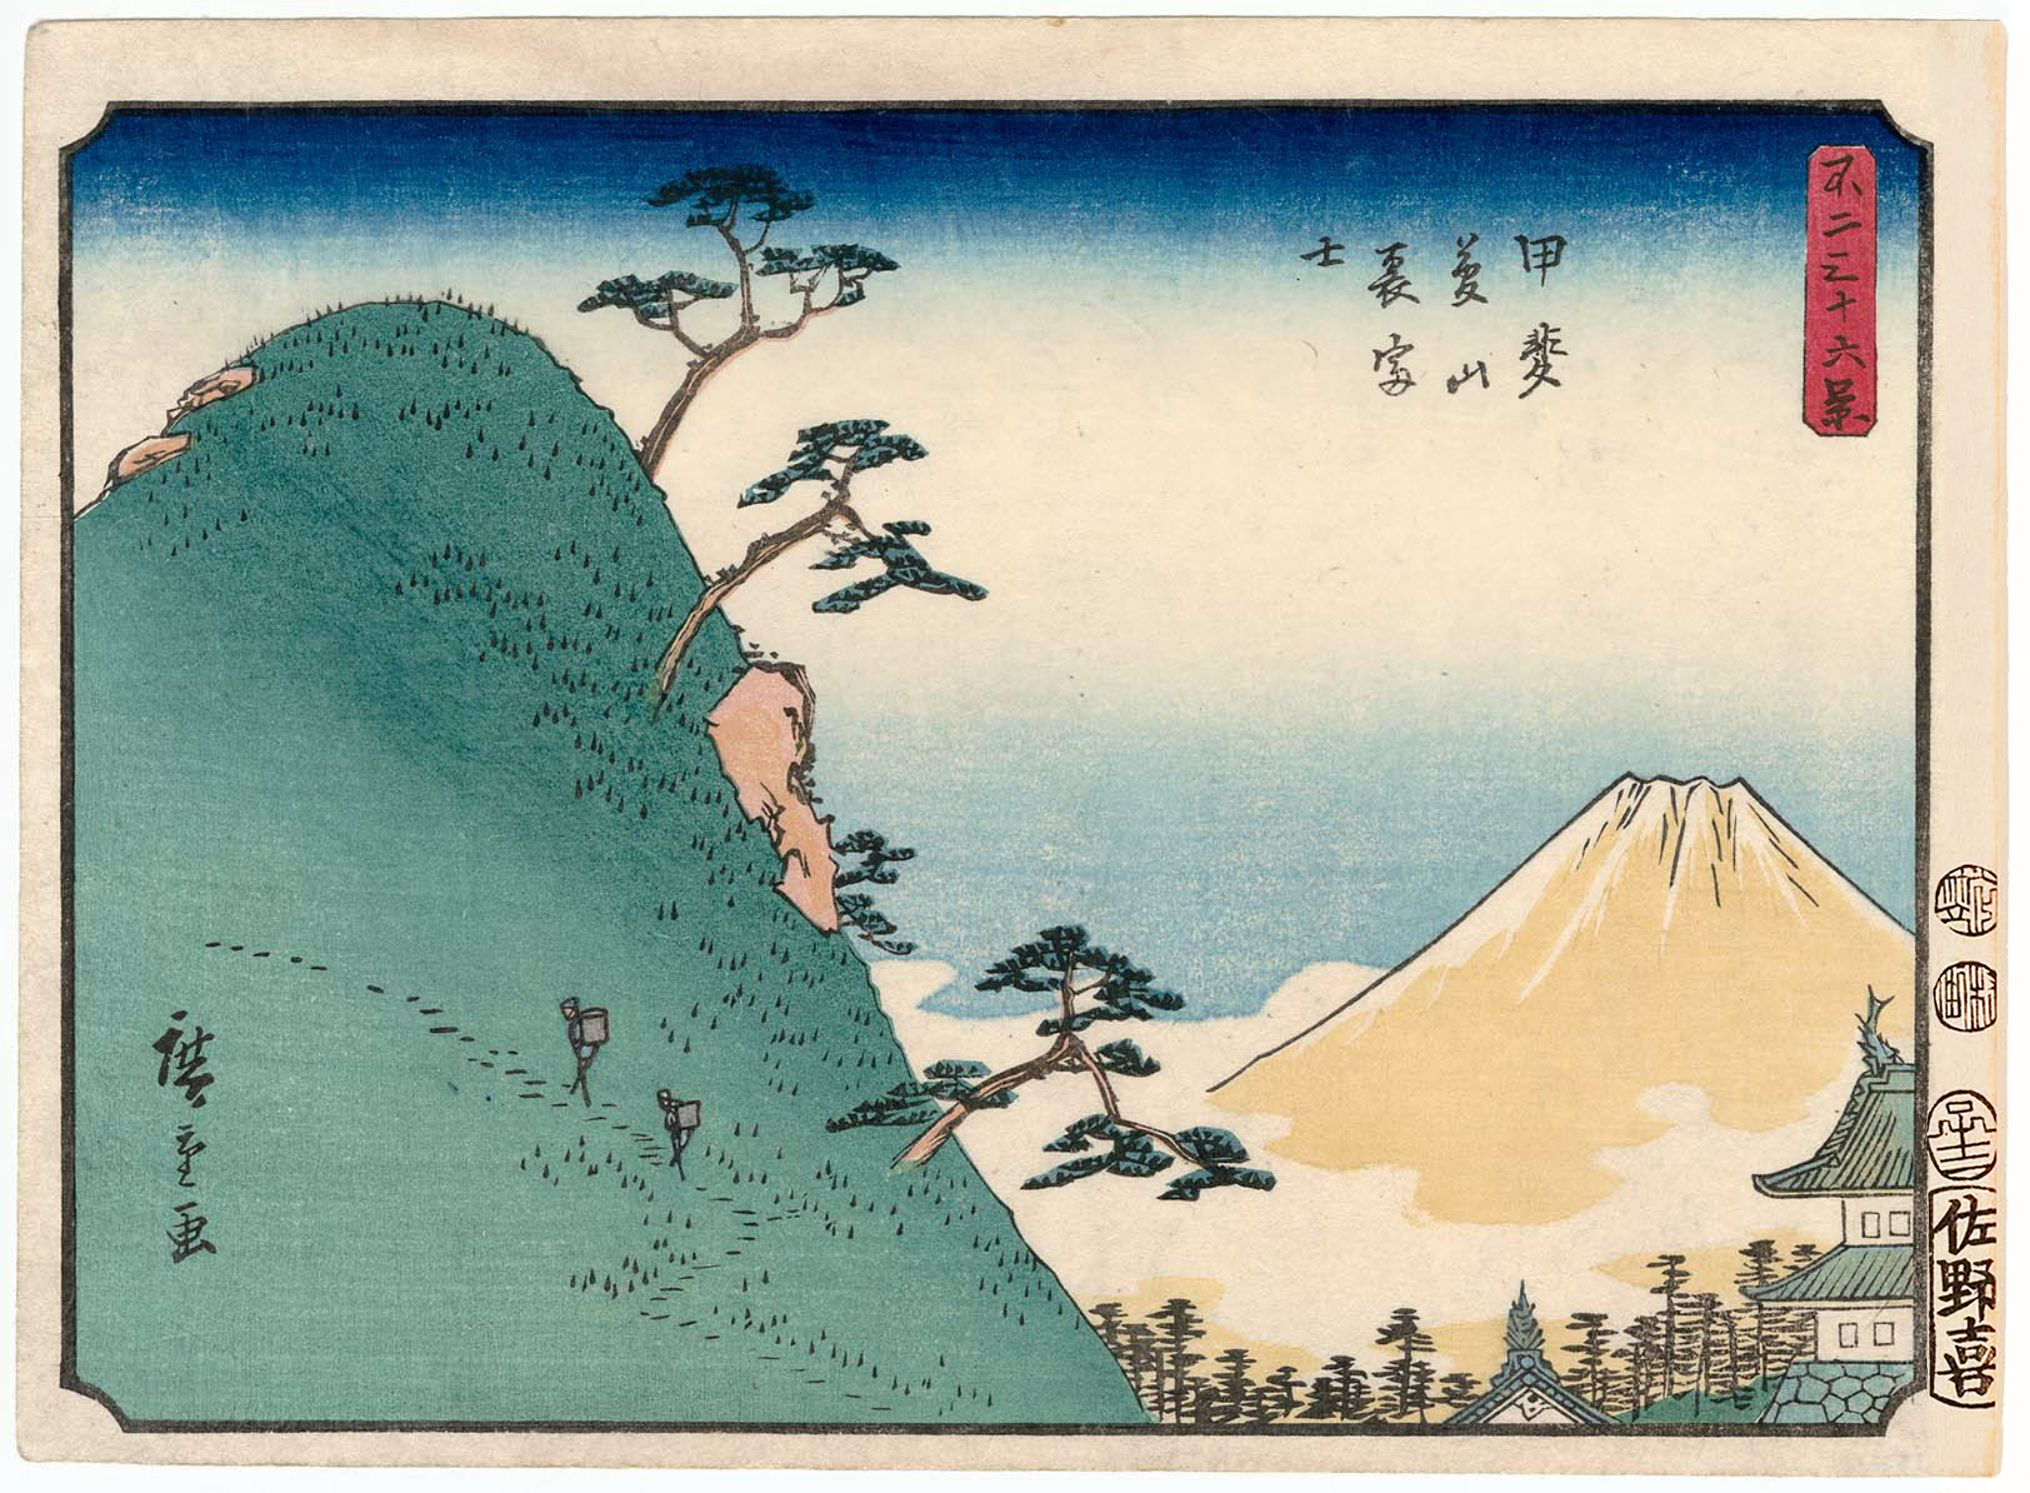 https://upload.wikimedia.org/wikipedia/commons/e/e1/Back_View_of_Fuji_from_Dream_Mtn_in_Kai_Province_%28Hiroshige%2C_1852%29.jpg